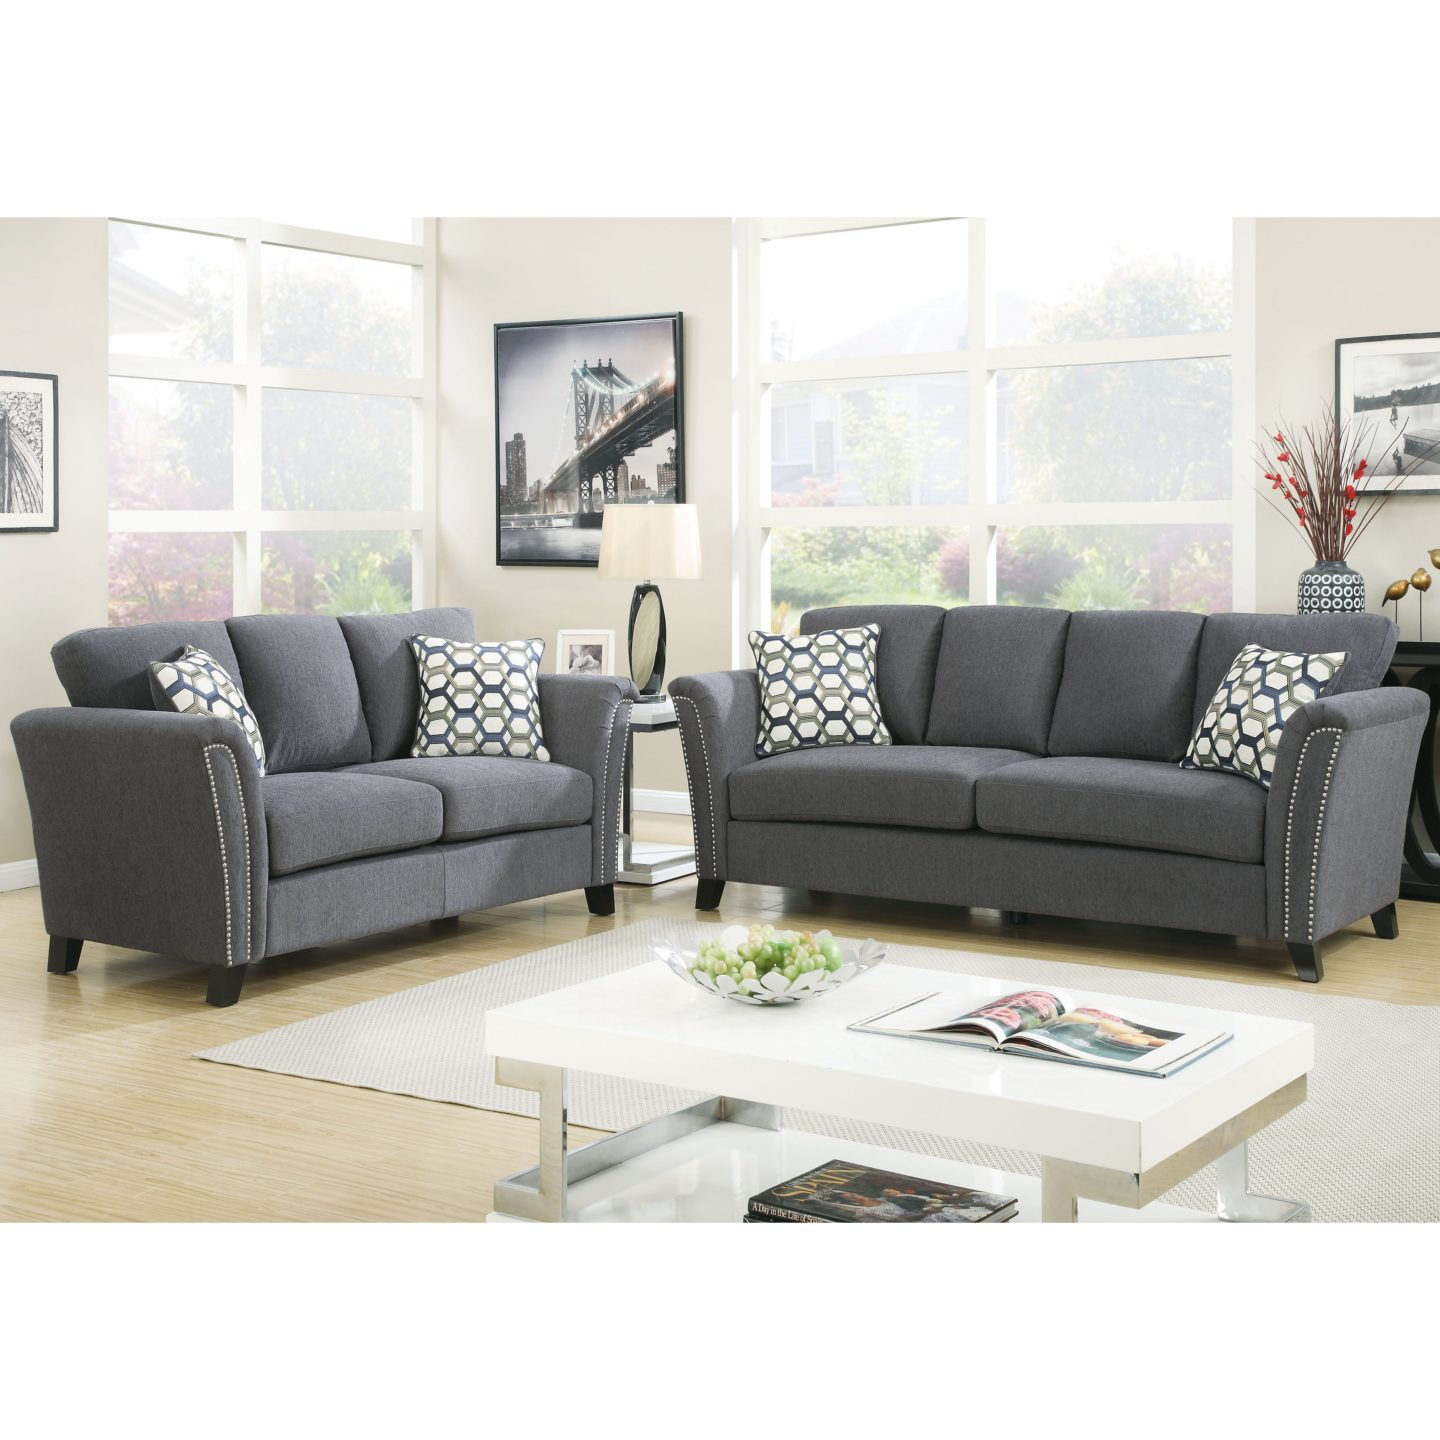 A traditional style sofa set